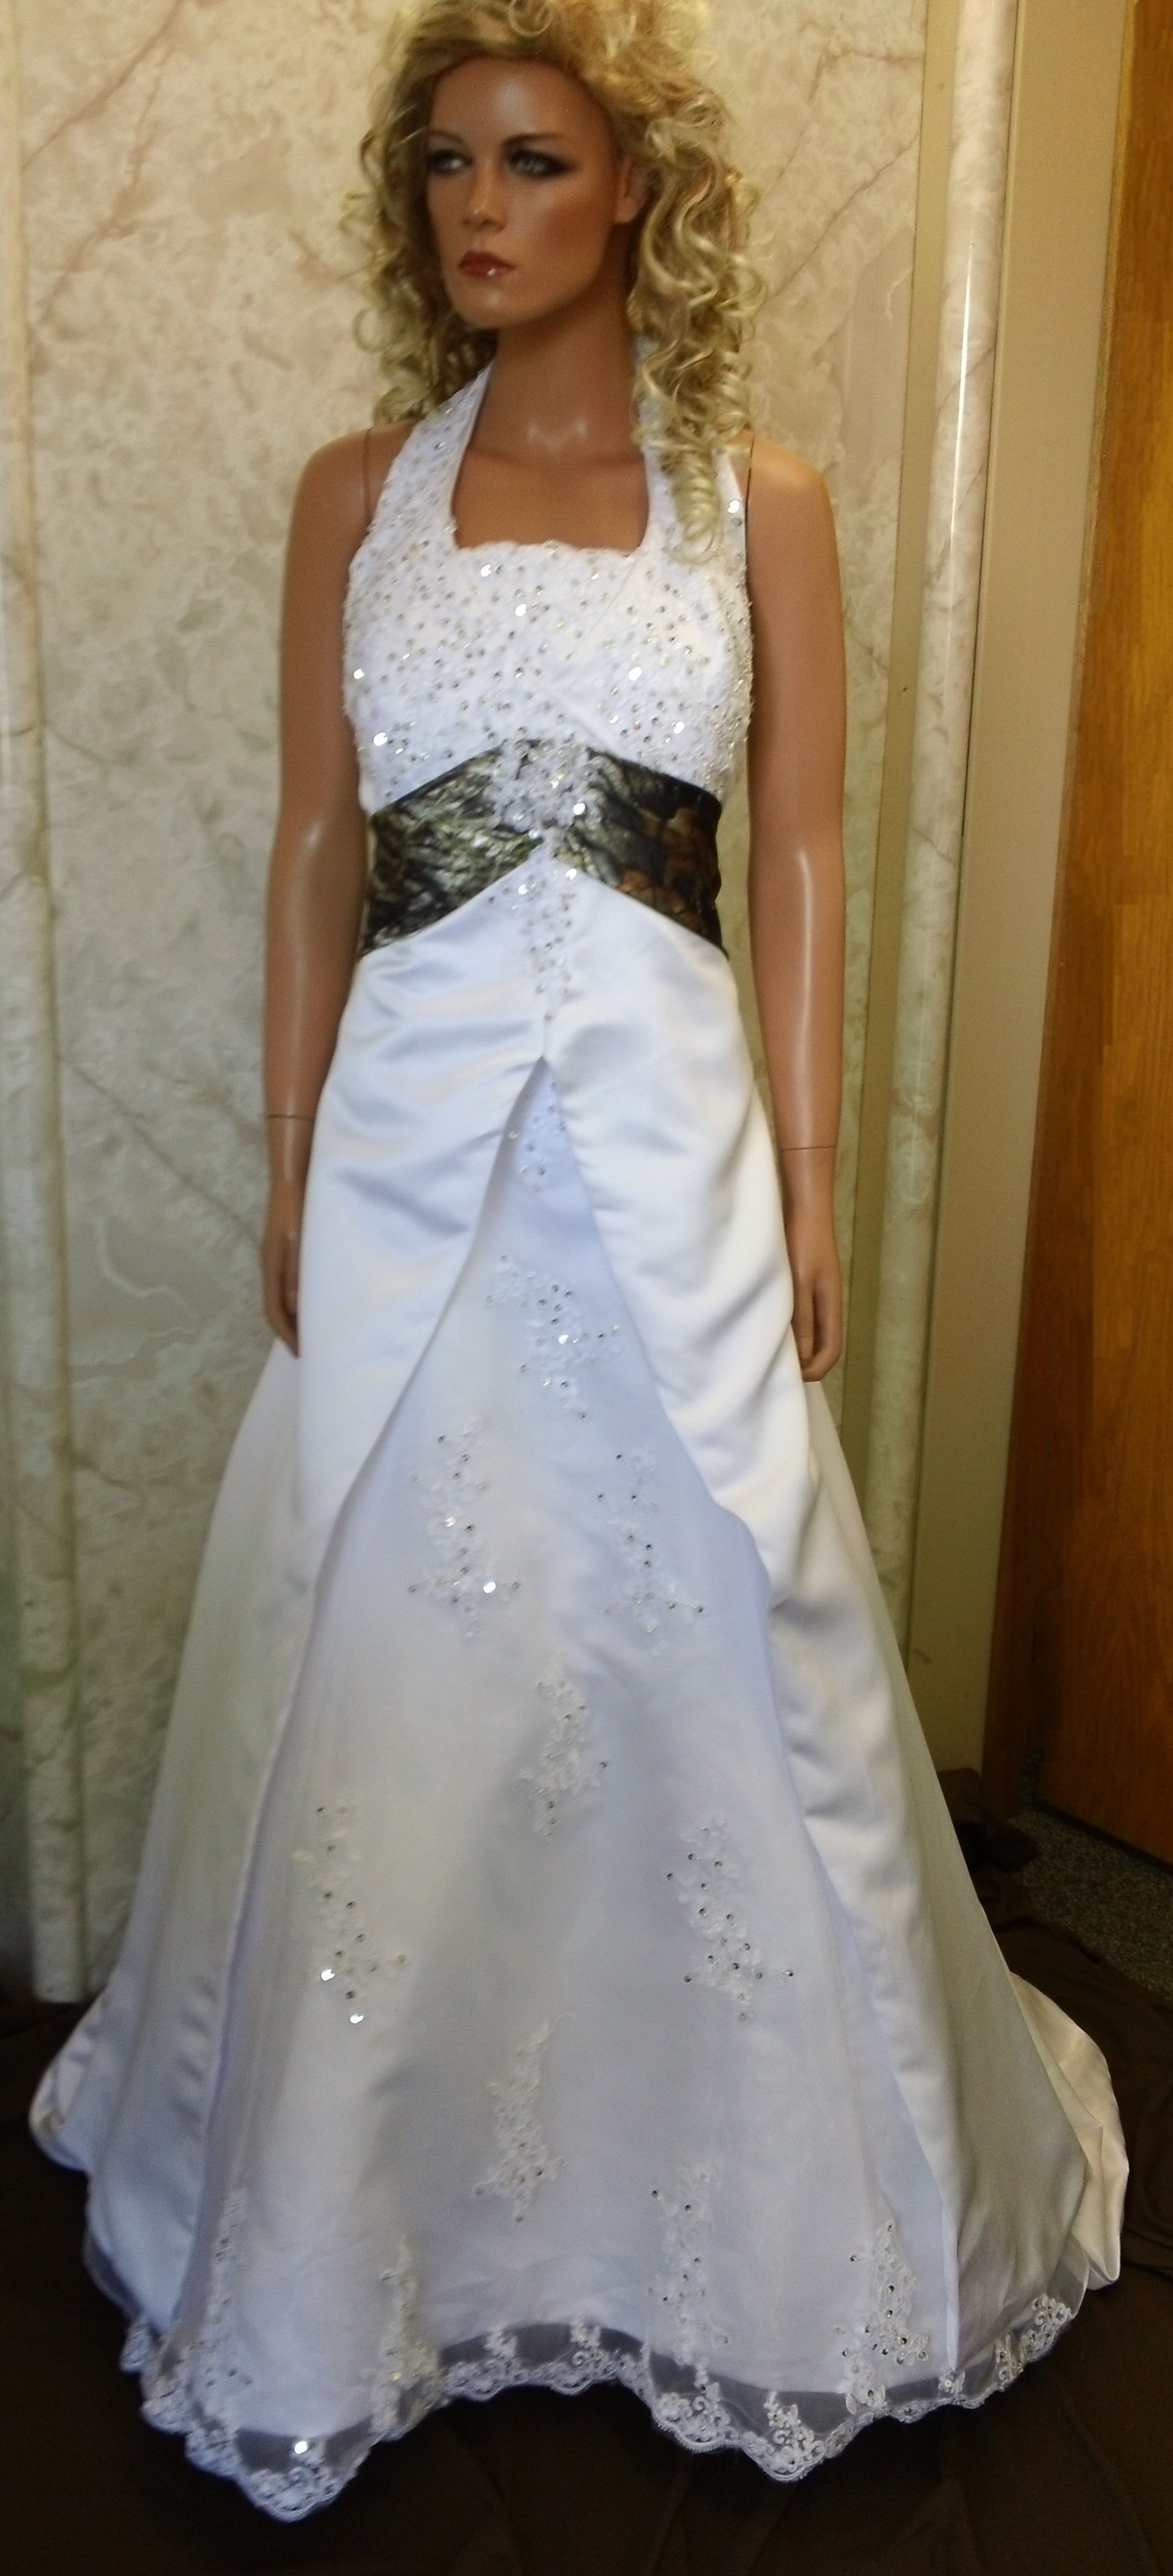 White camo wedding dress sash beautiful dresses pinterest satin wedding gown with sweetheart empire halter neckline wedding dresses with camouflage accents long camouflage sash ombrellifo Gallery